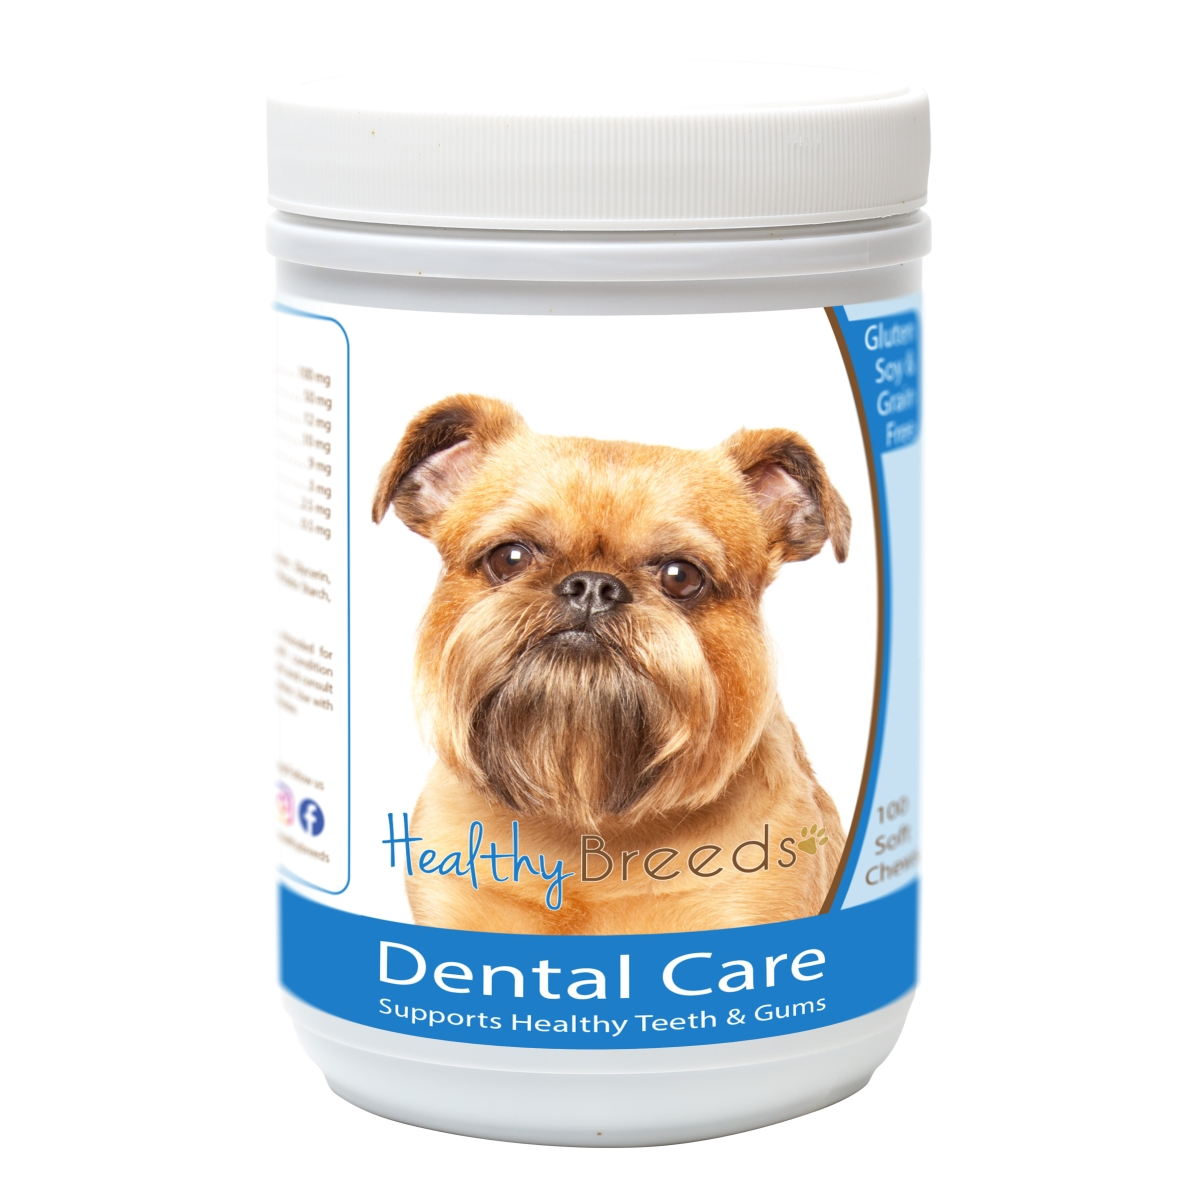 Healthy Breeds 840235162605 Brussels Griffon Breath Care Soft Chews for Dogs - 60 Count